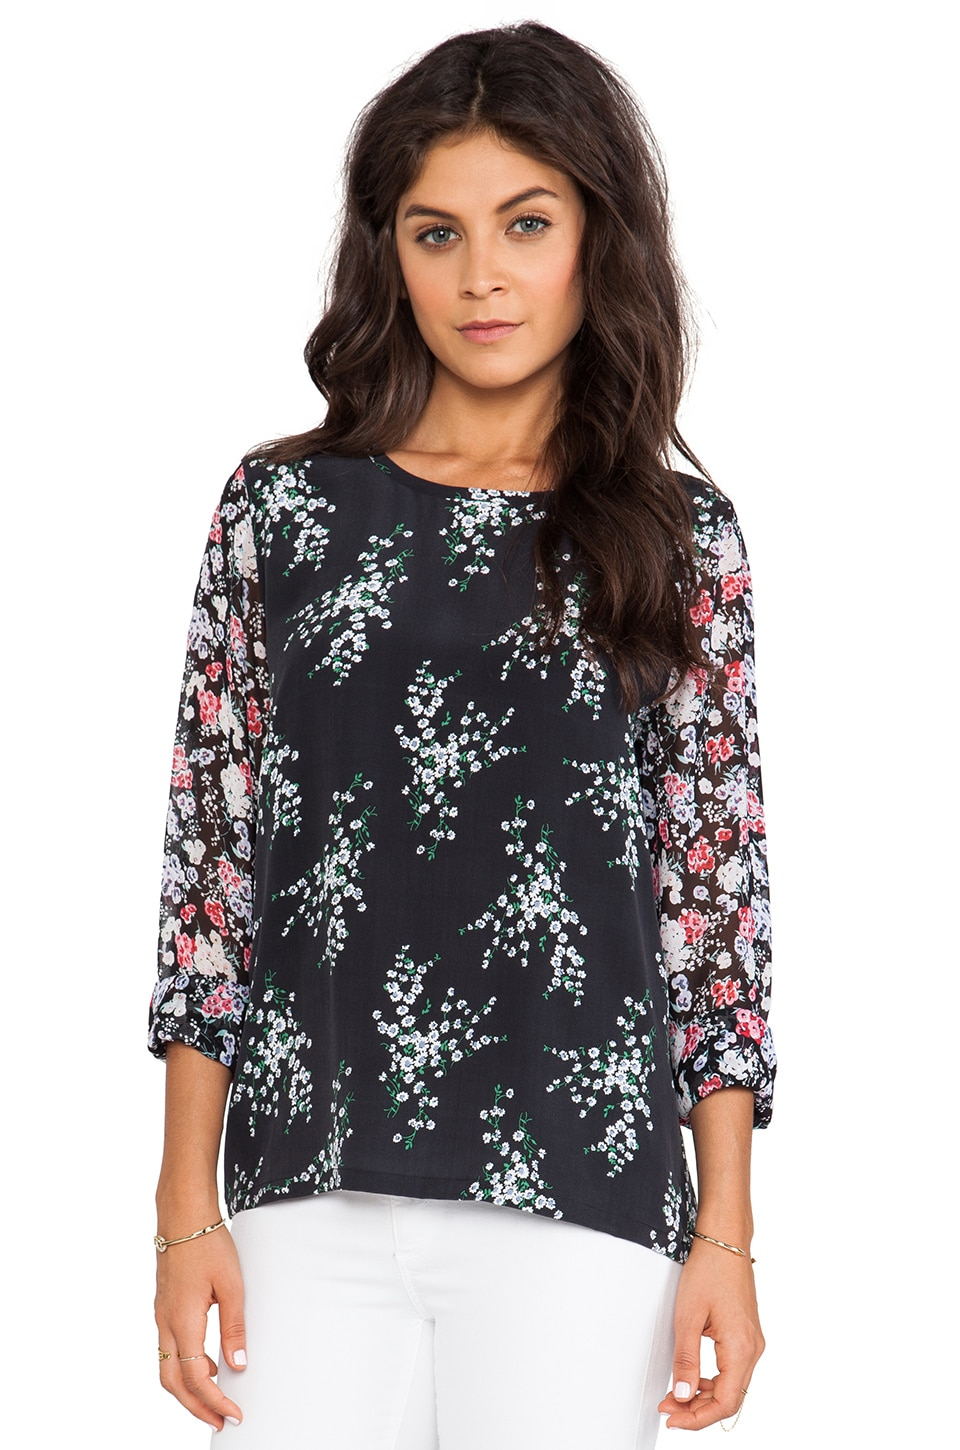 Equipment Liam Elevated Bloom Blouse in True Black